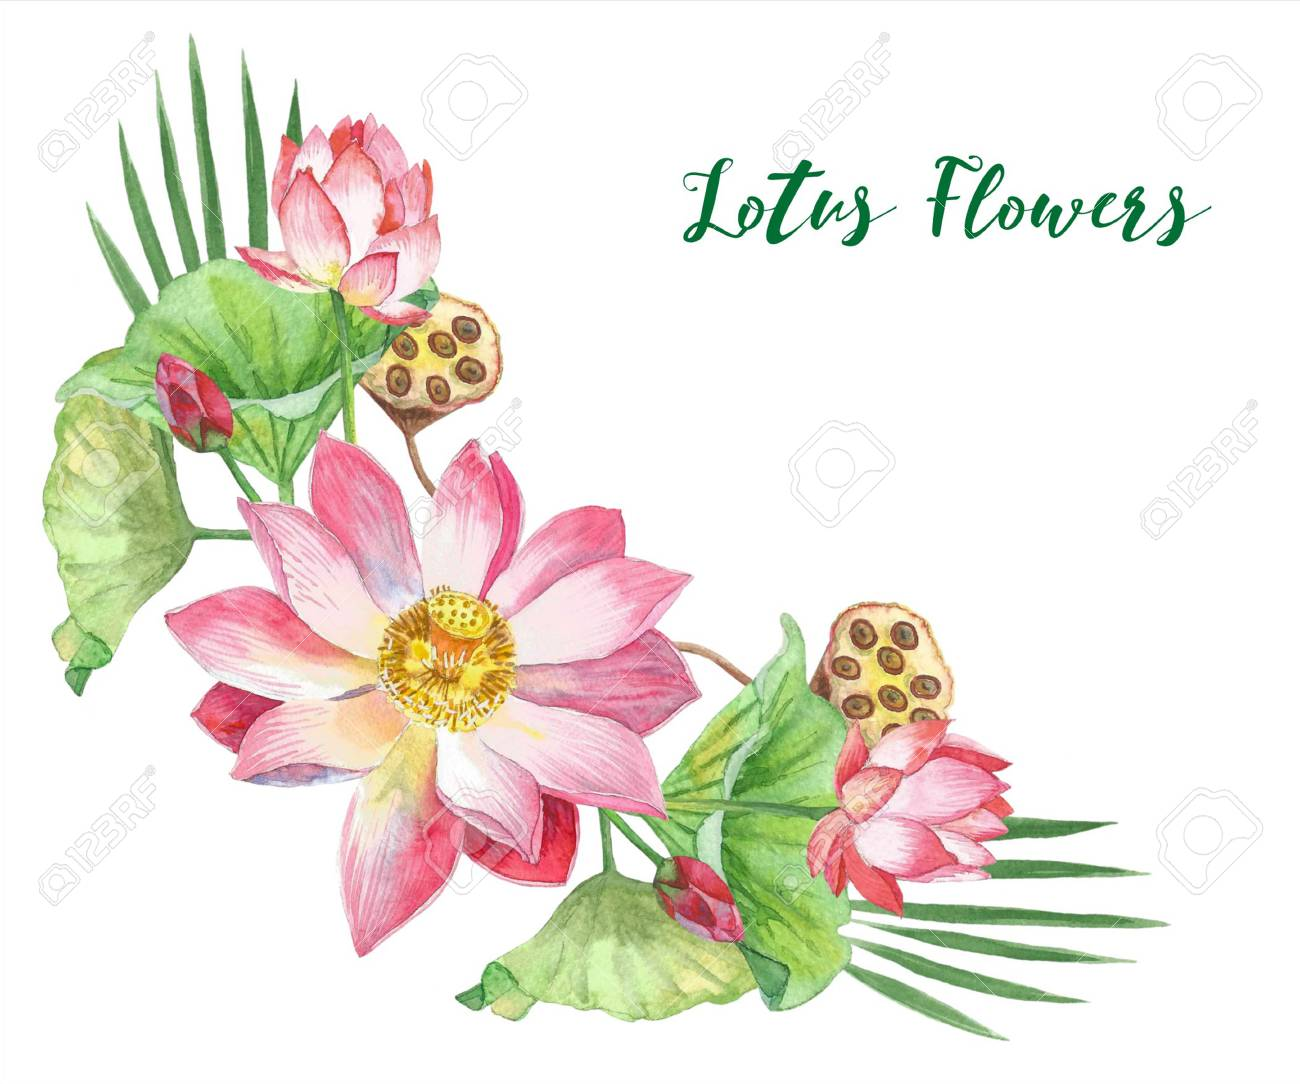 Lotus Flowers Hand Painted Watercolor Illustration Stock Photo